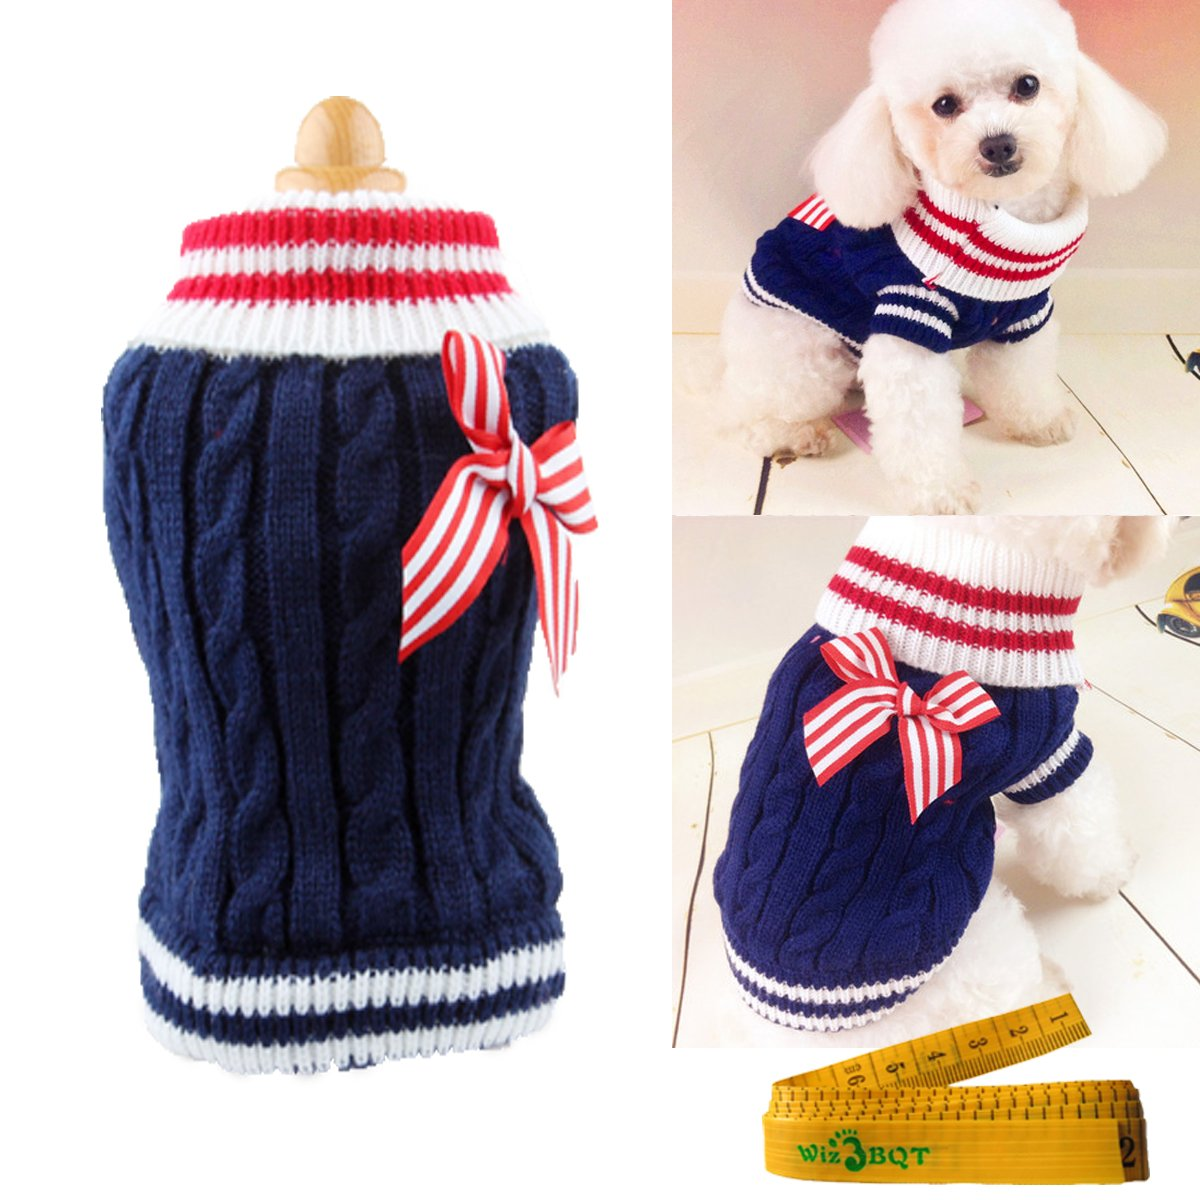 Pet Dog Sweater Knitted Braid Plait Turtleneck Navy Style Bowknot Knitwear Outwear for Dogs & Cats (Blue, XXS)